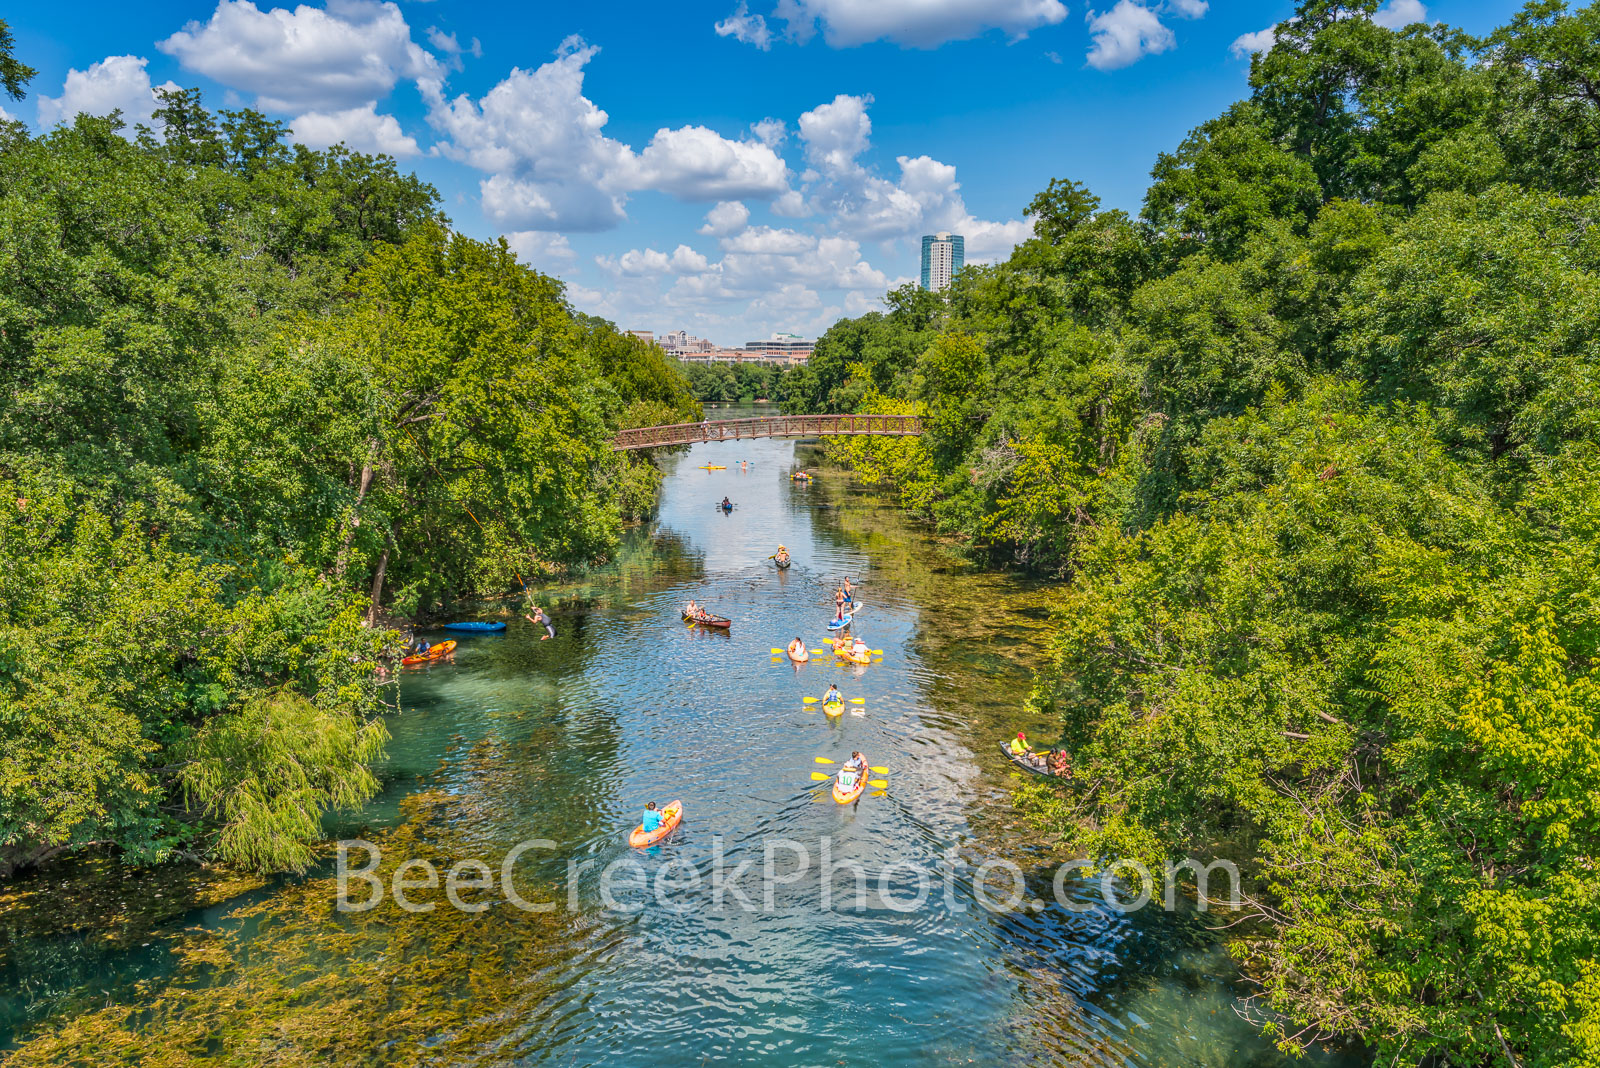 Austin, Barton Spring creek, Lady Bird Lake, Barton Springs, creek, trees, Canoeing, kayaking, Sups, Zilker park, Places to go in Austin, Places to see in Austin Tx, spring fed waters, natural, , photo